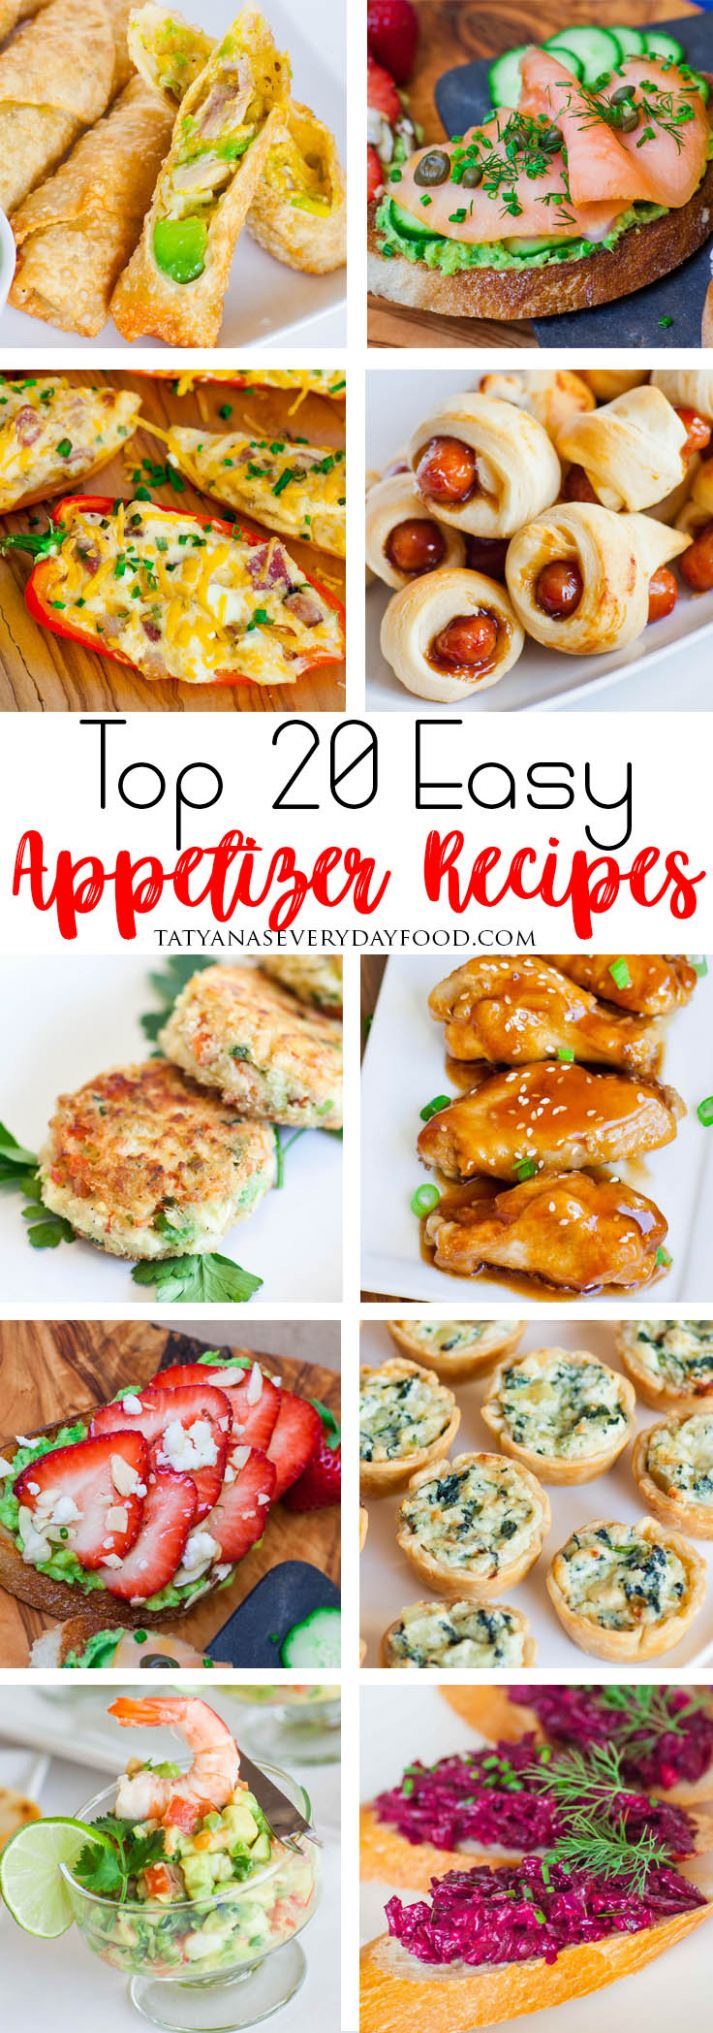 Top 8 Easy Appetizer Recipes - Simple Recipes Appetizers